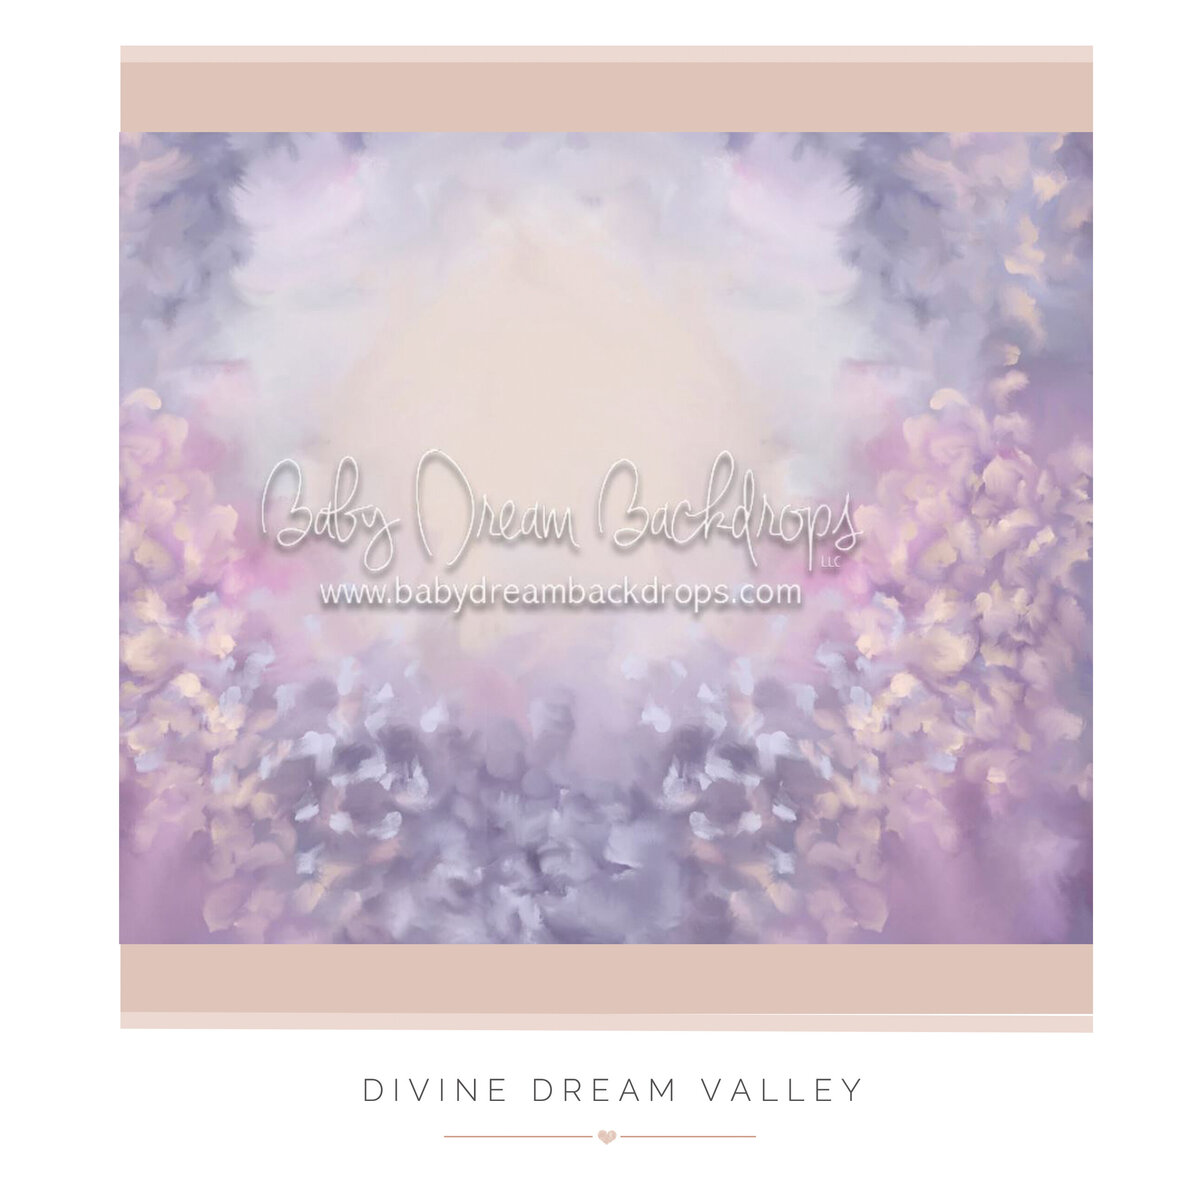 Divine Dream Valley